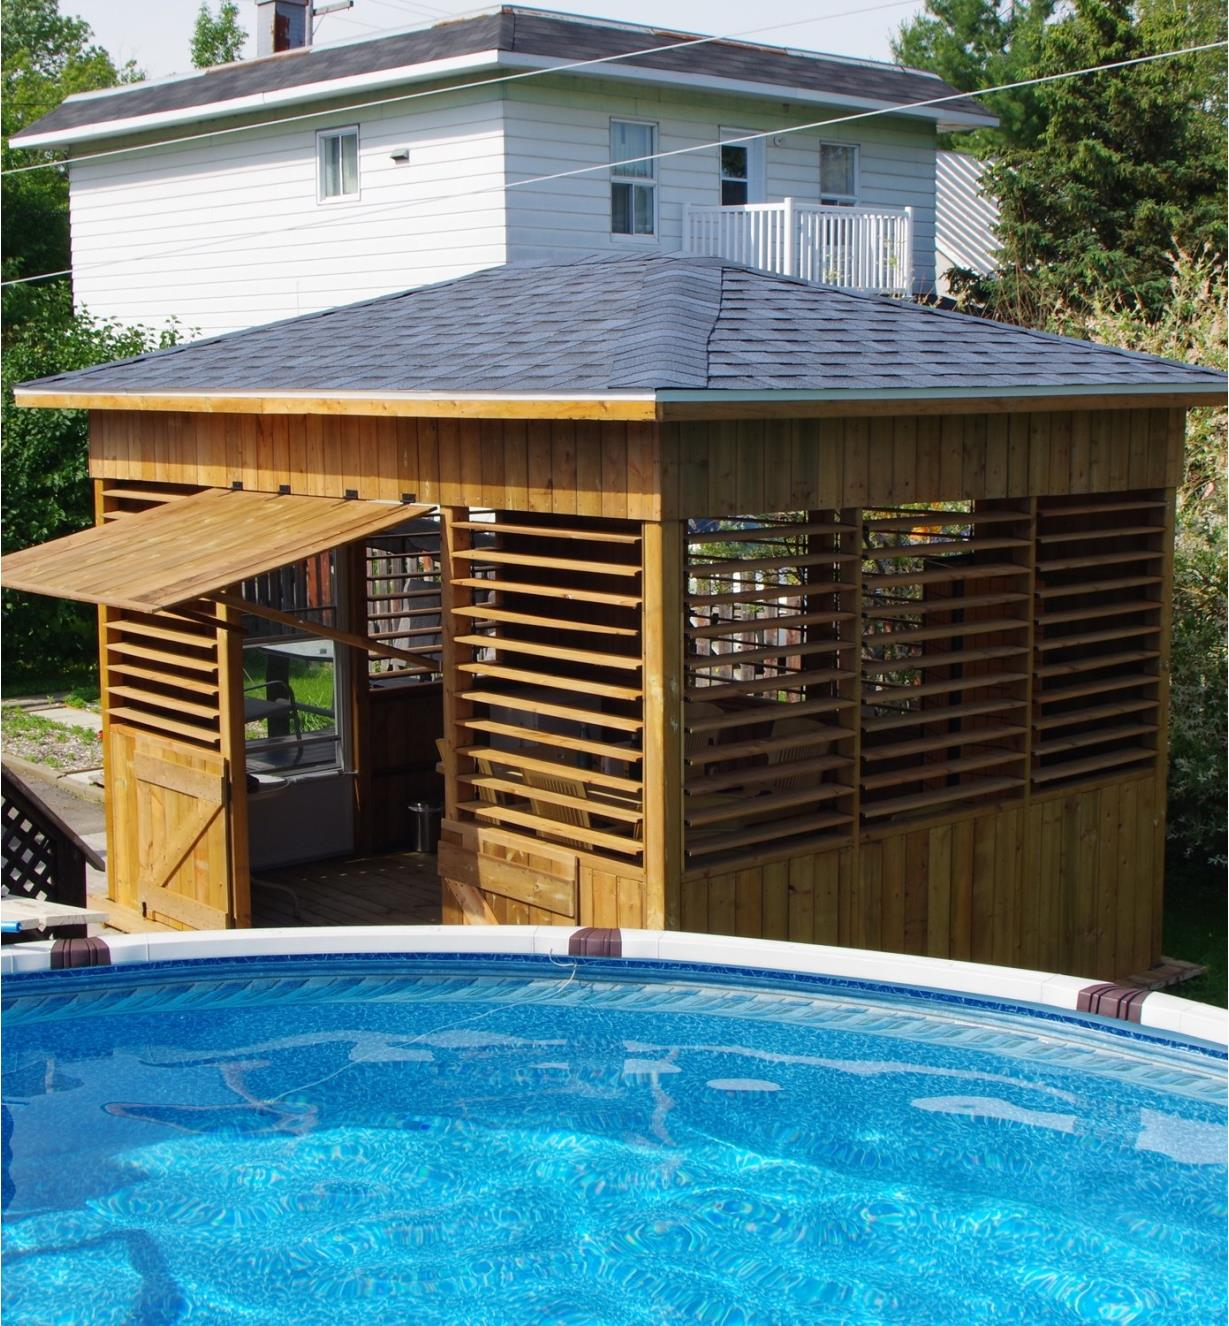 Example of louvers installed on a backyard pool house